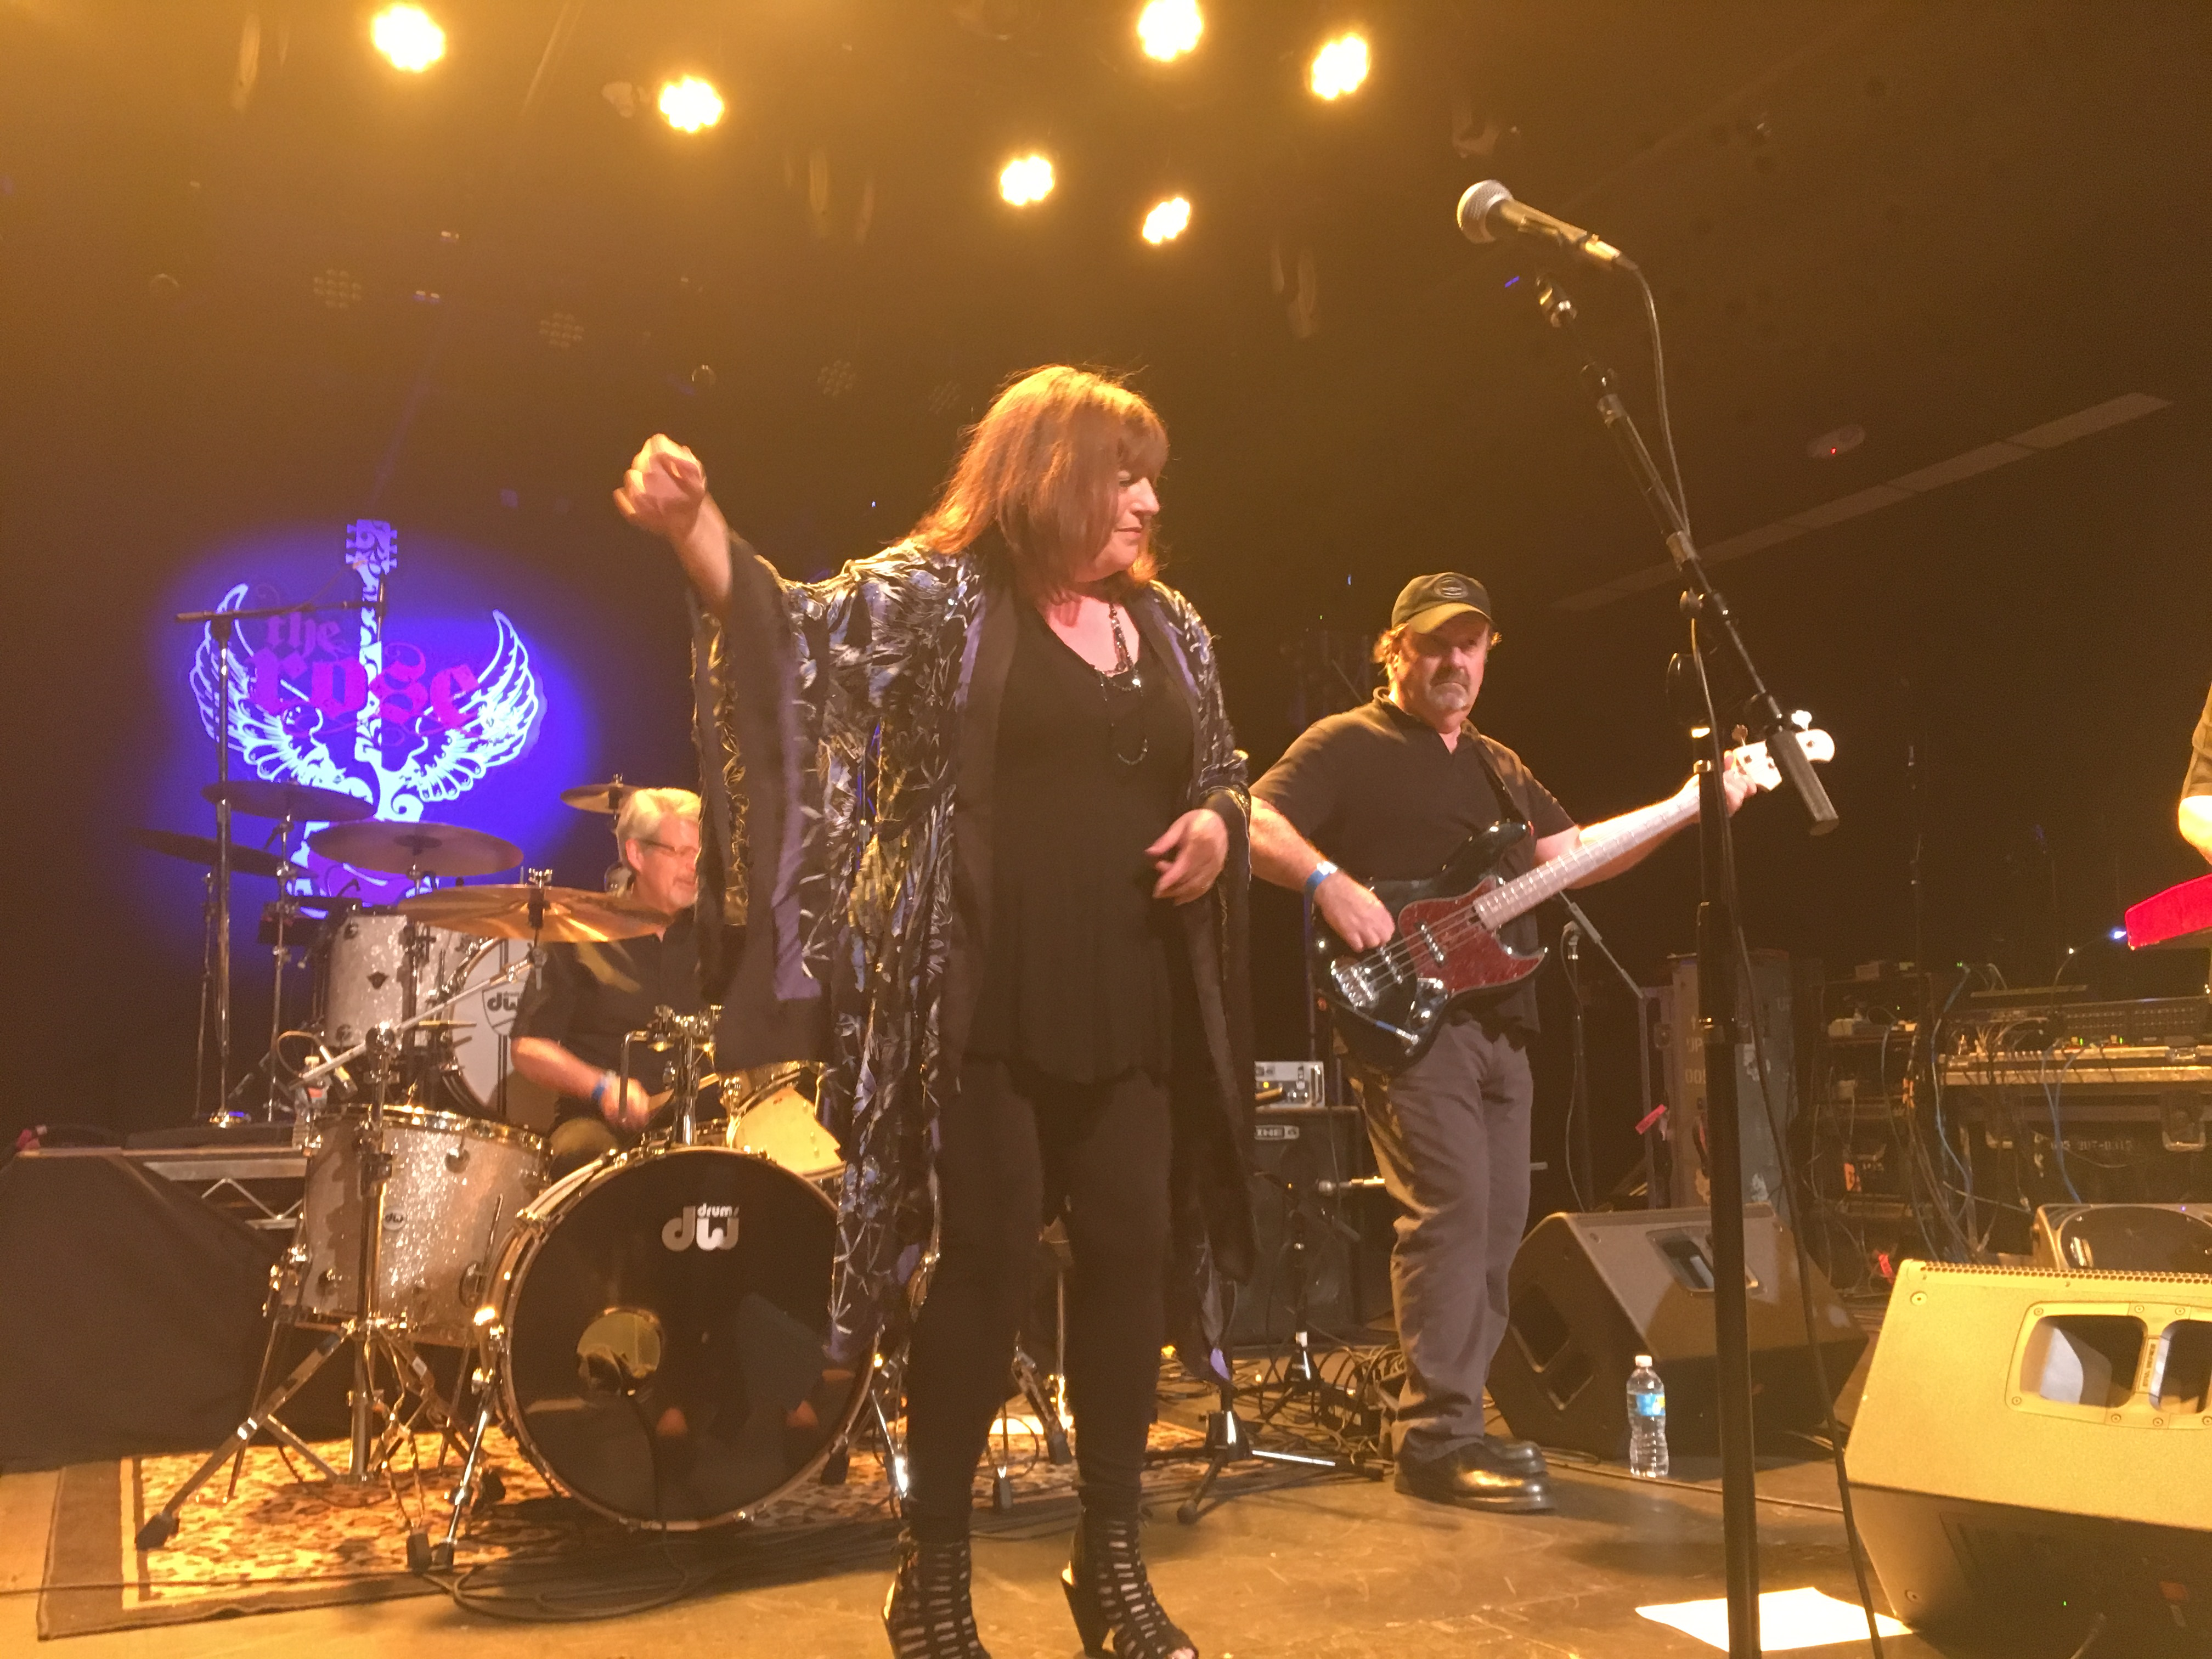 Sidney Iverson belts it out at the Rose in Pasadena with power and finesse-- a whole lotta soul that fuses Janis, Tina, and Aretha